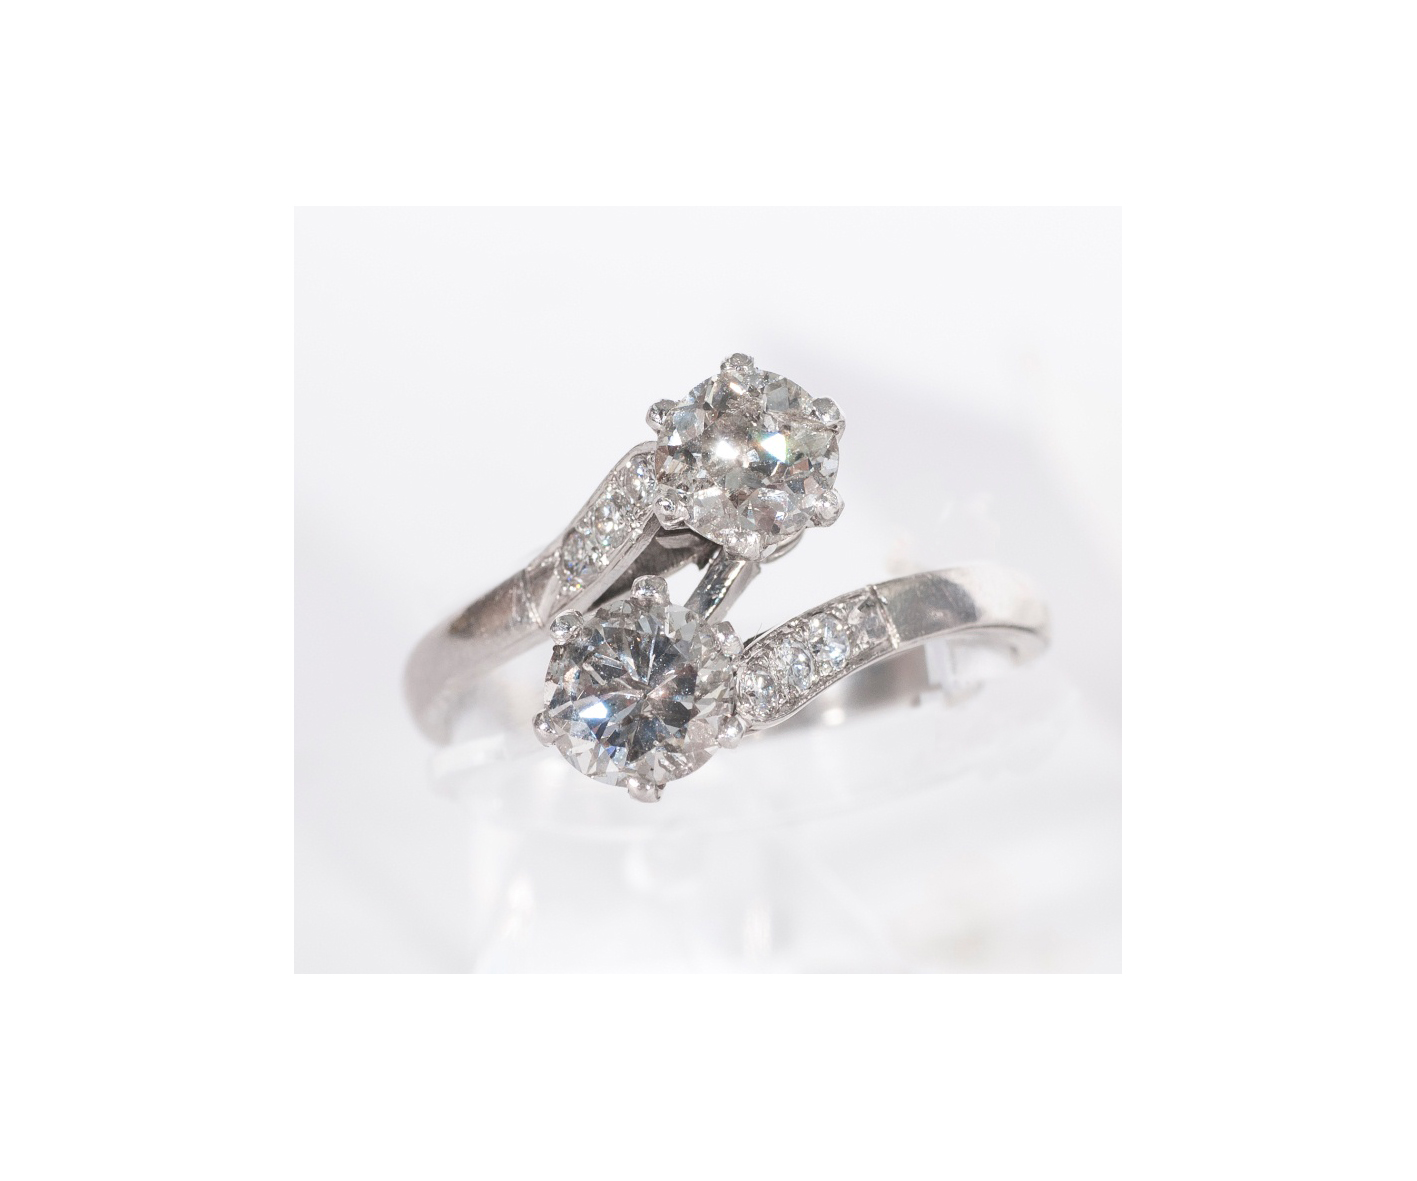 A petite diamond ring